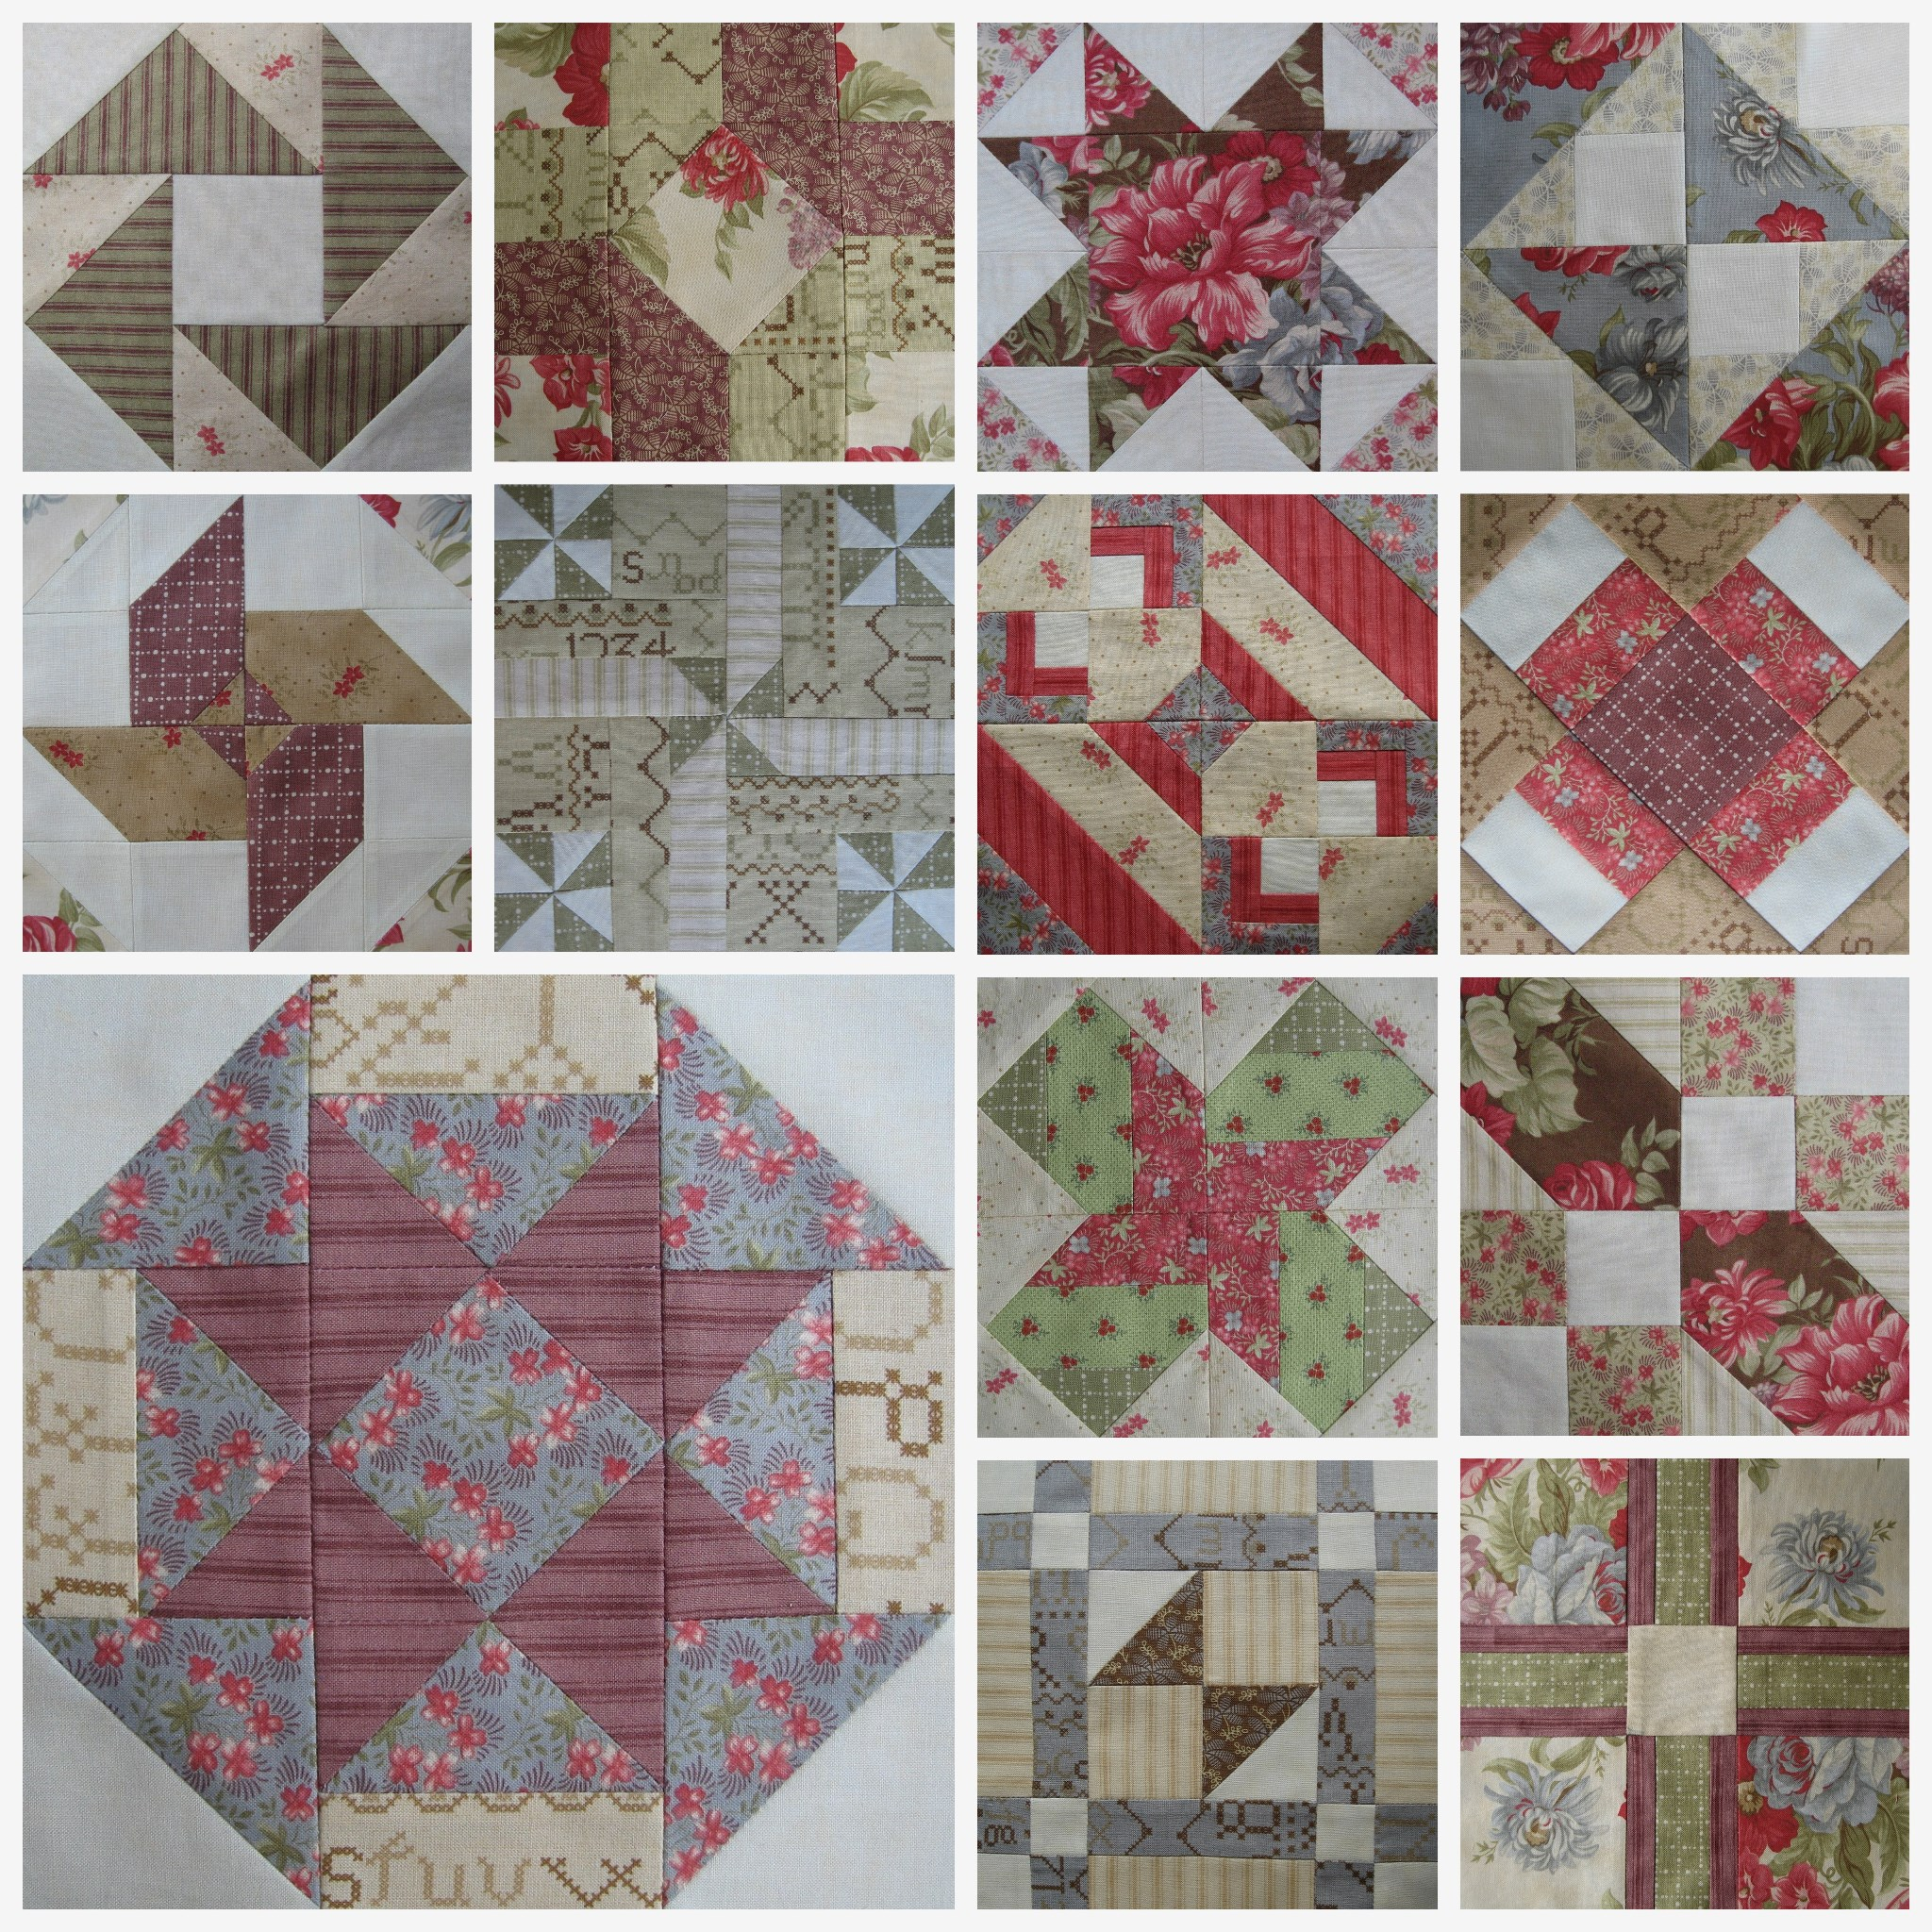 Blocks #1-13 - Virtual Quilting Bee